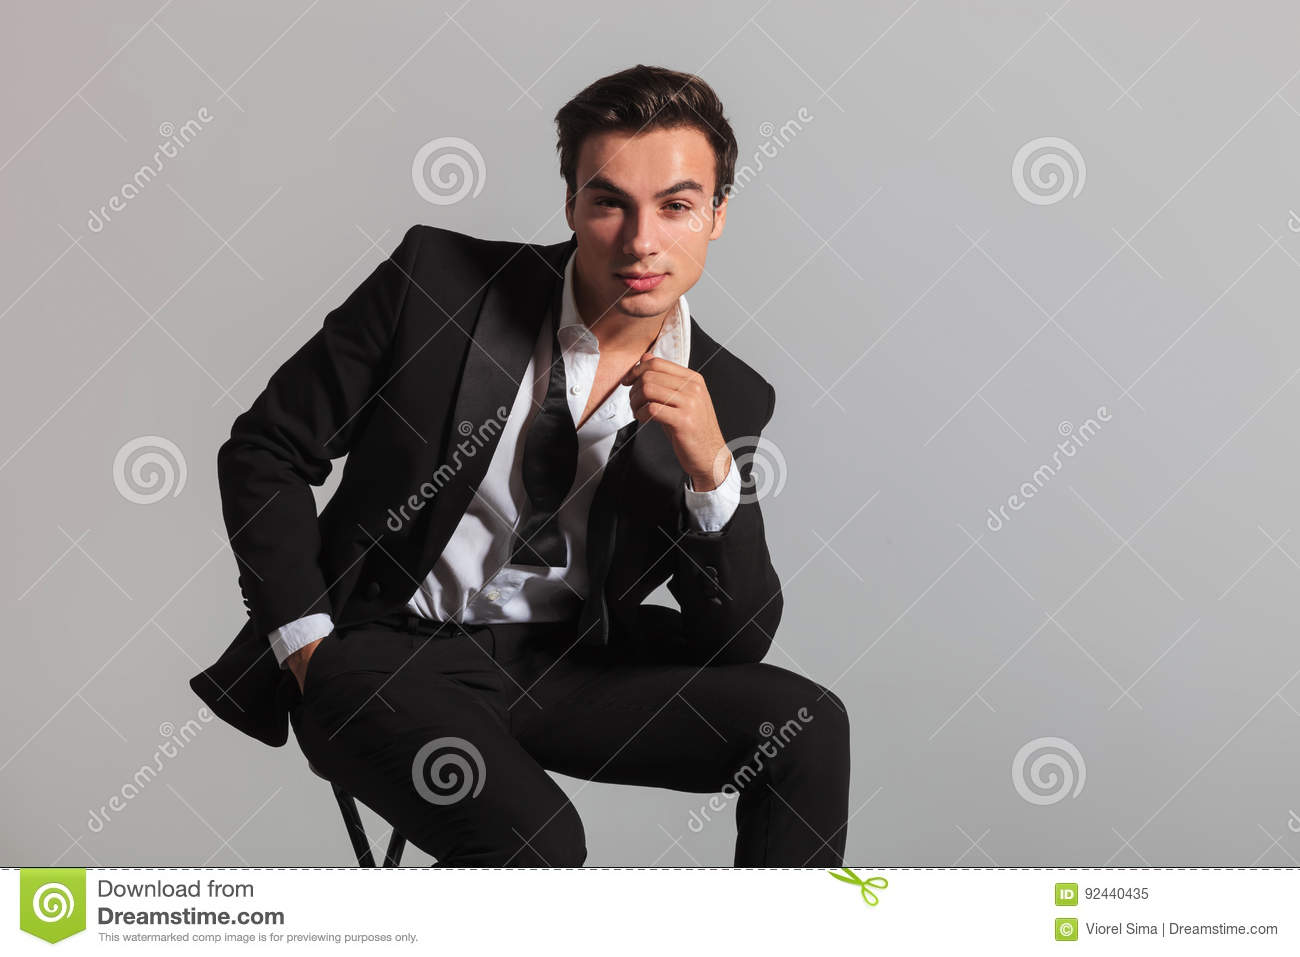 a380337fc929 Smiling Elegant Man In Tuxedo And Undone Bowtie Sitting Stock Image ...